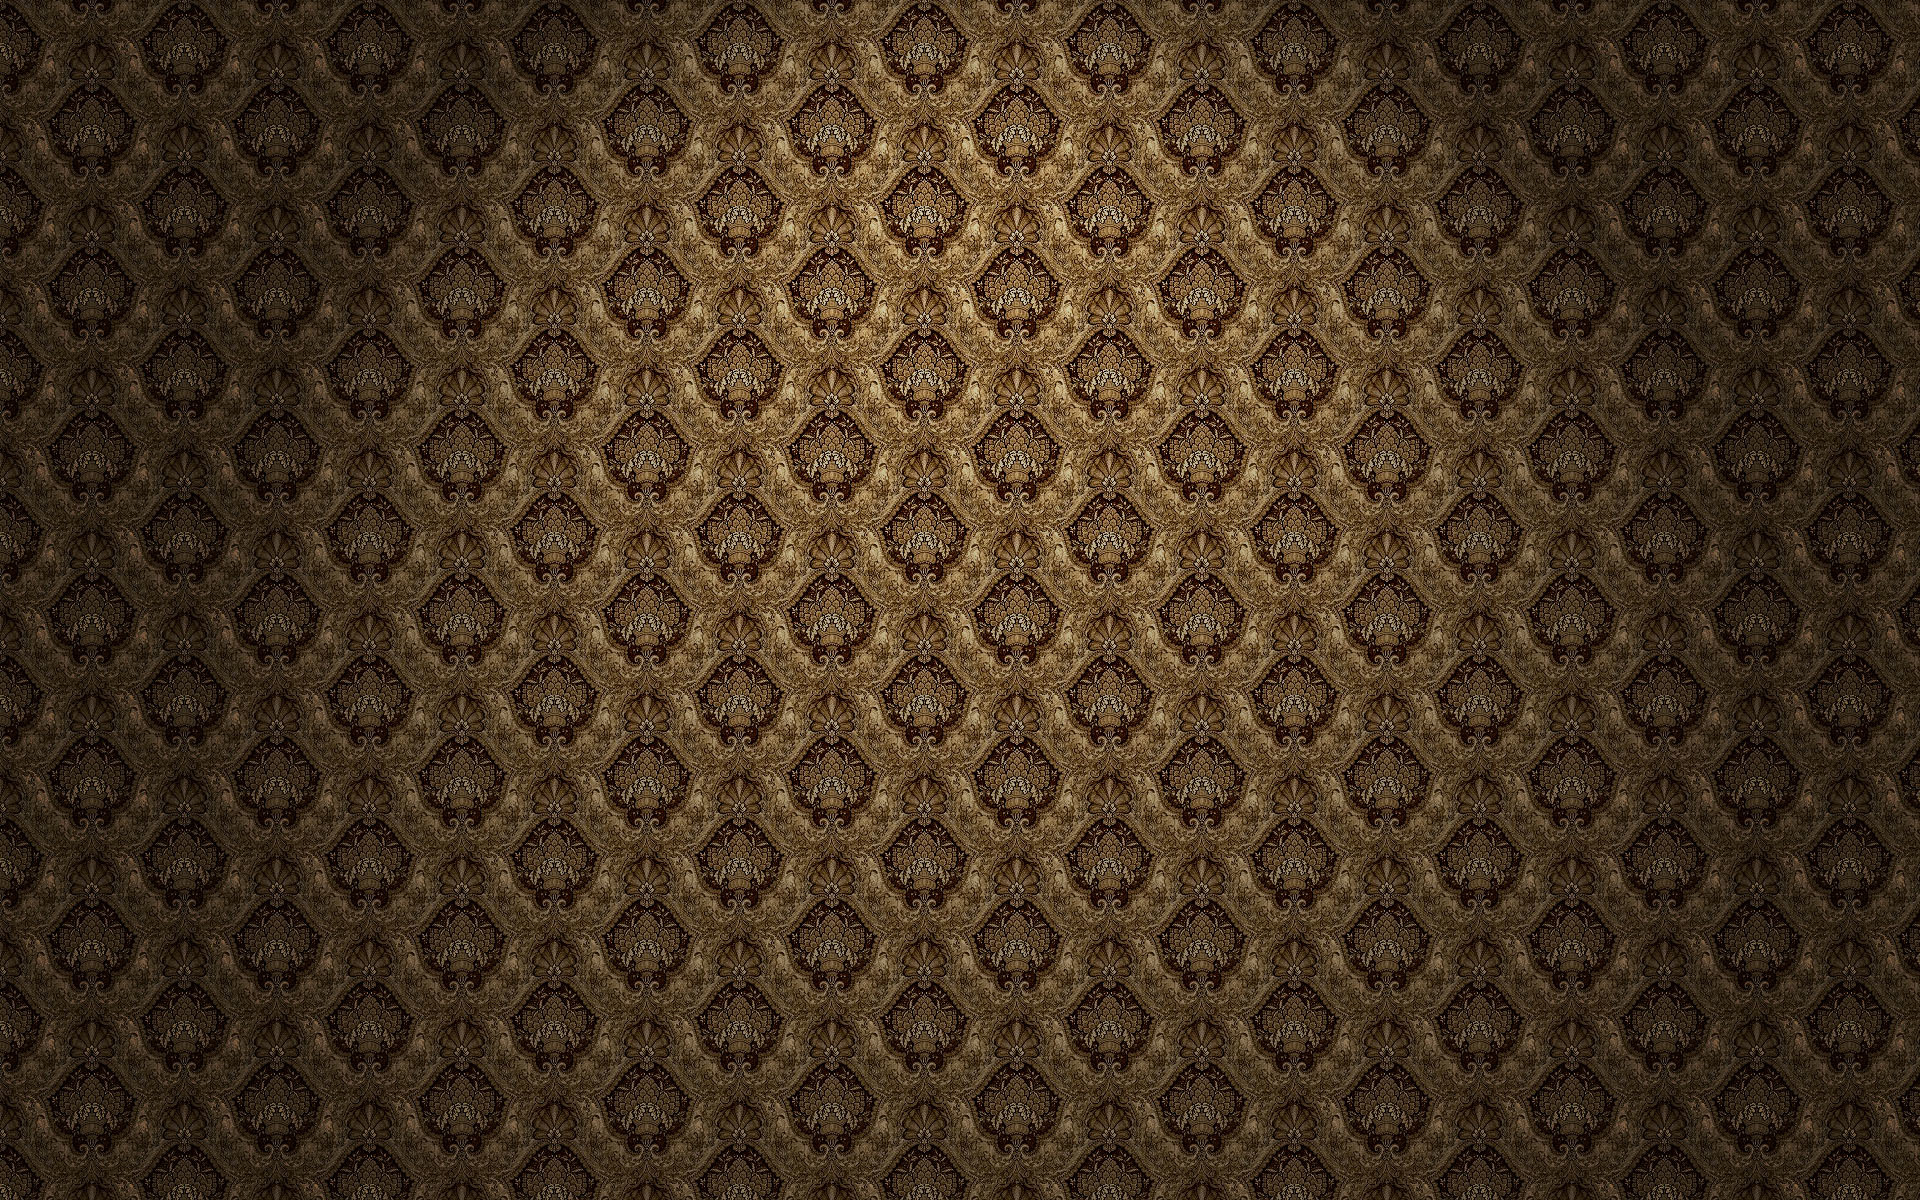 Old wall pattern 1920x1200 1920x1200